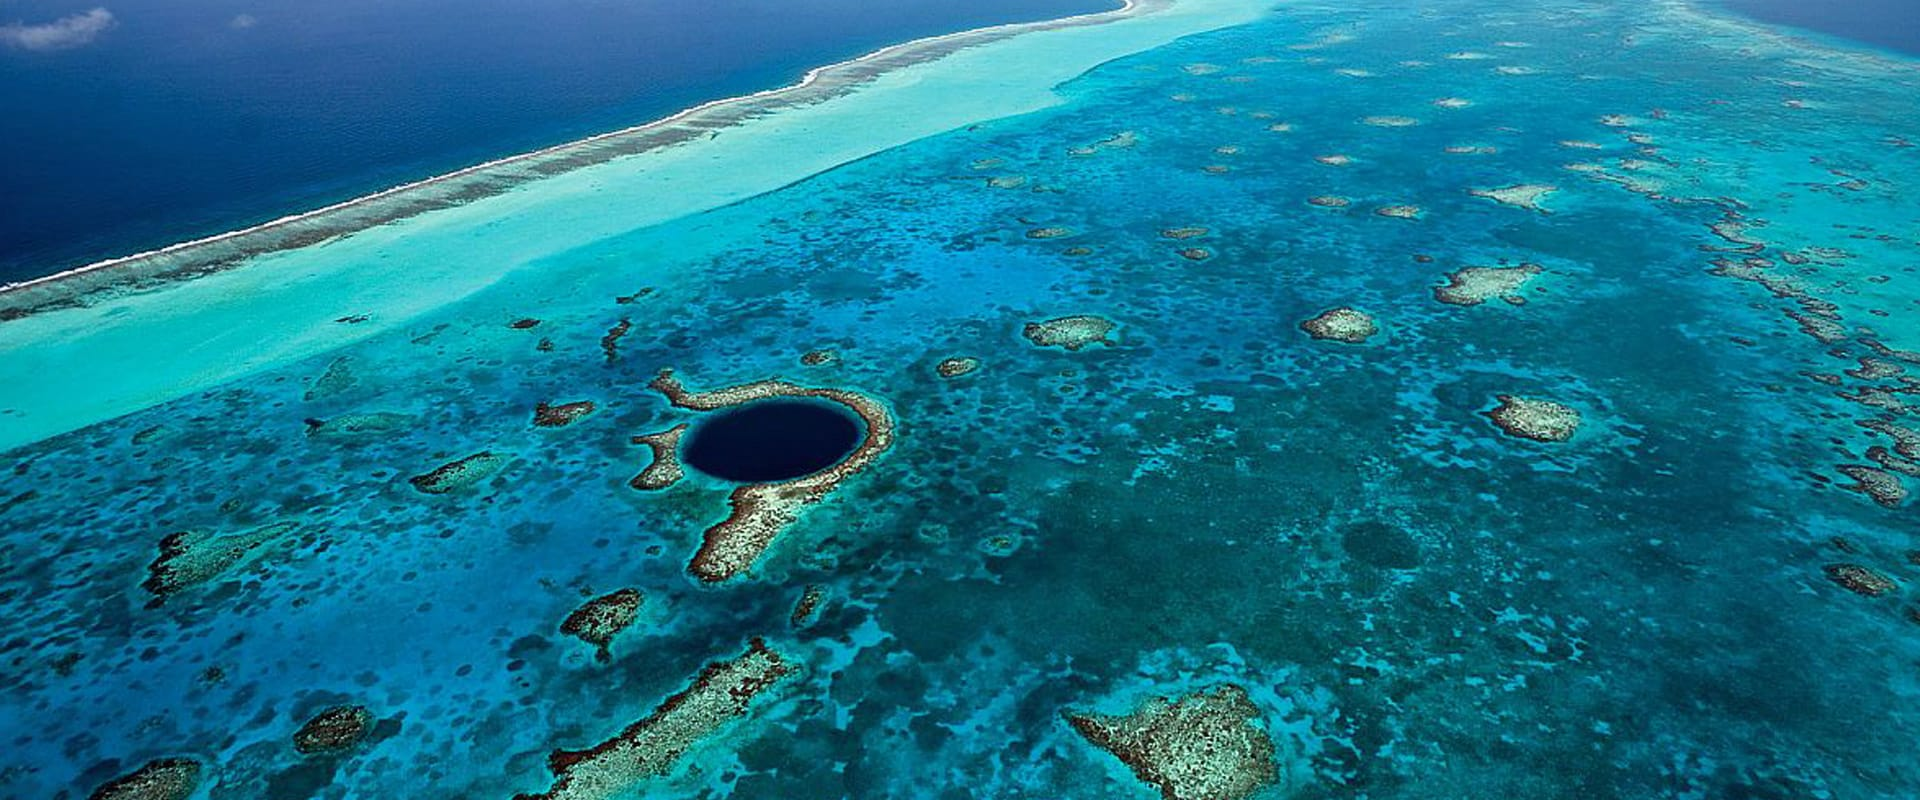 Aerial over Belize's Great Blue Hole